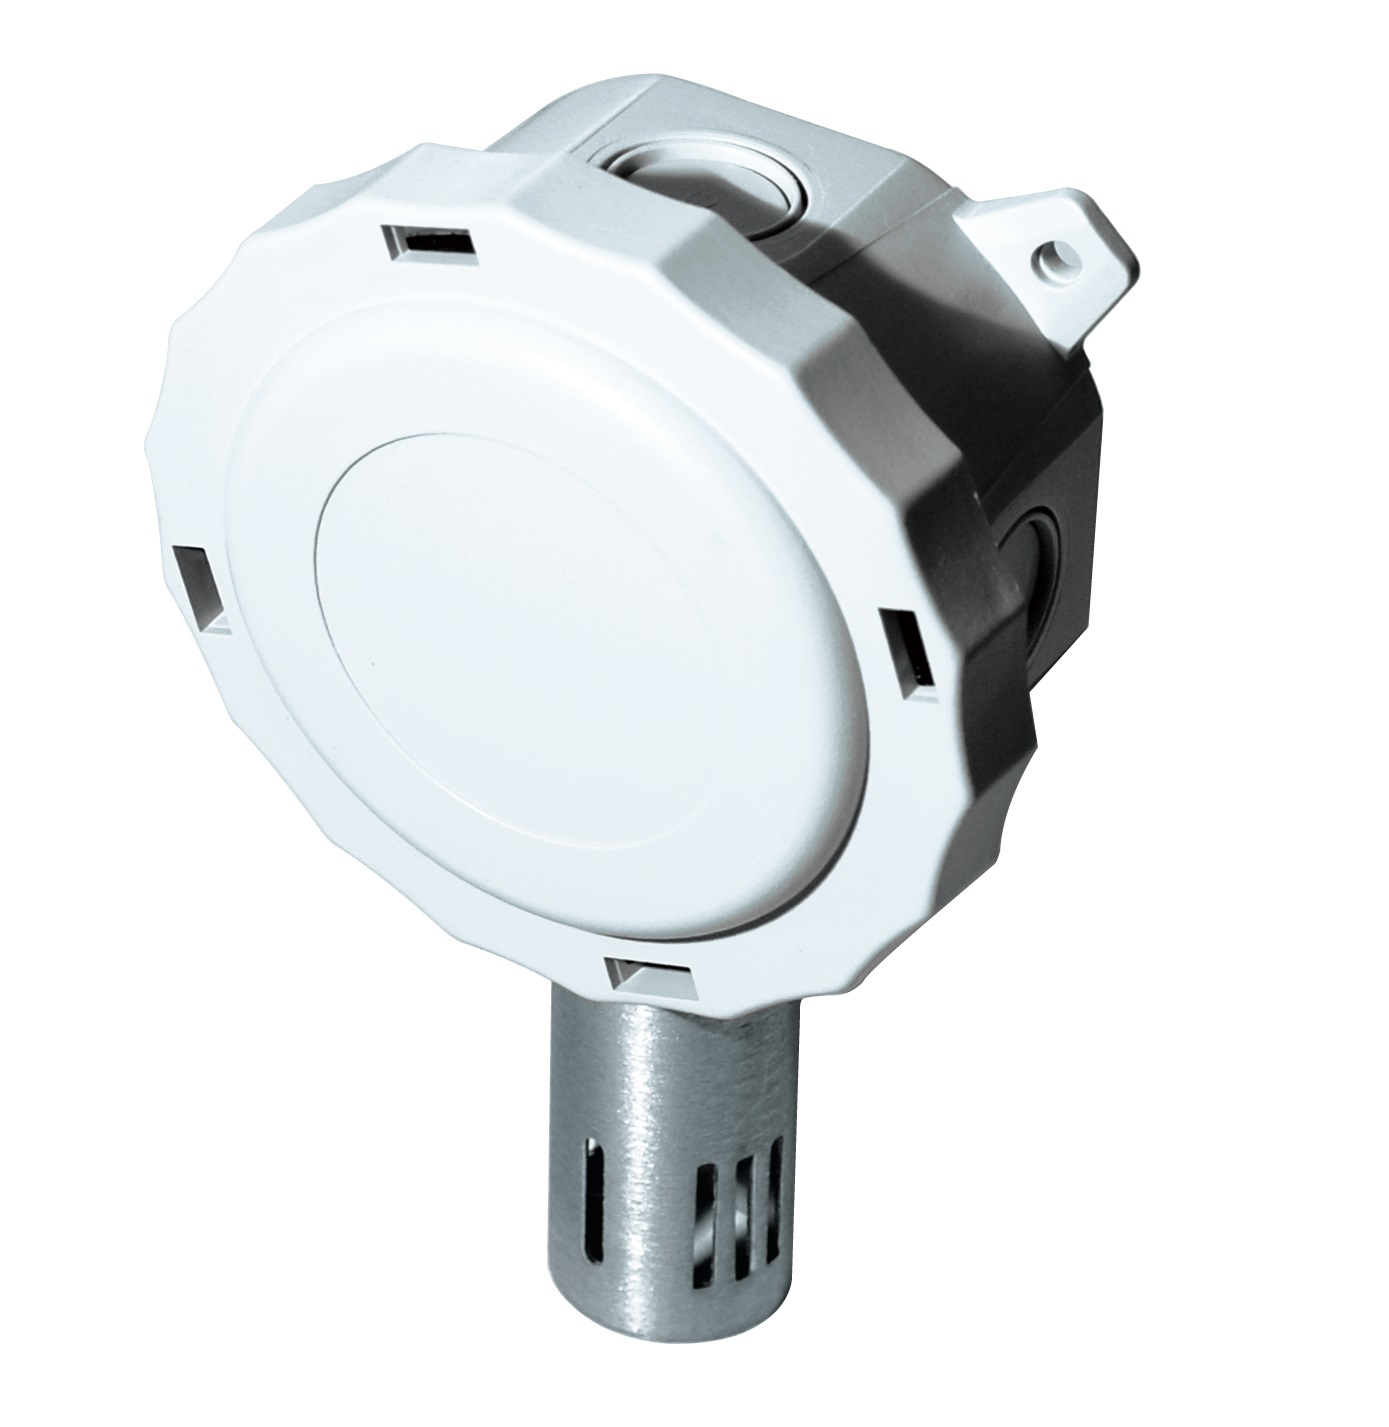 A/RH3-O -  ACI 3% Outdoor Air Humidity Sensor 4-20mA Output